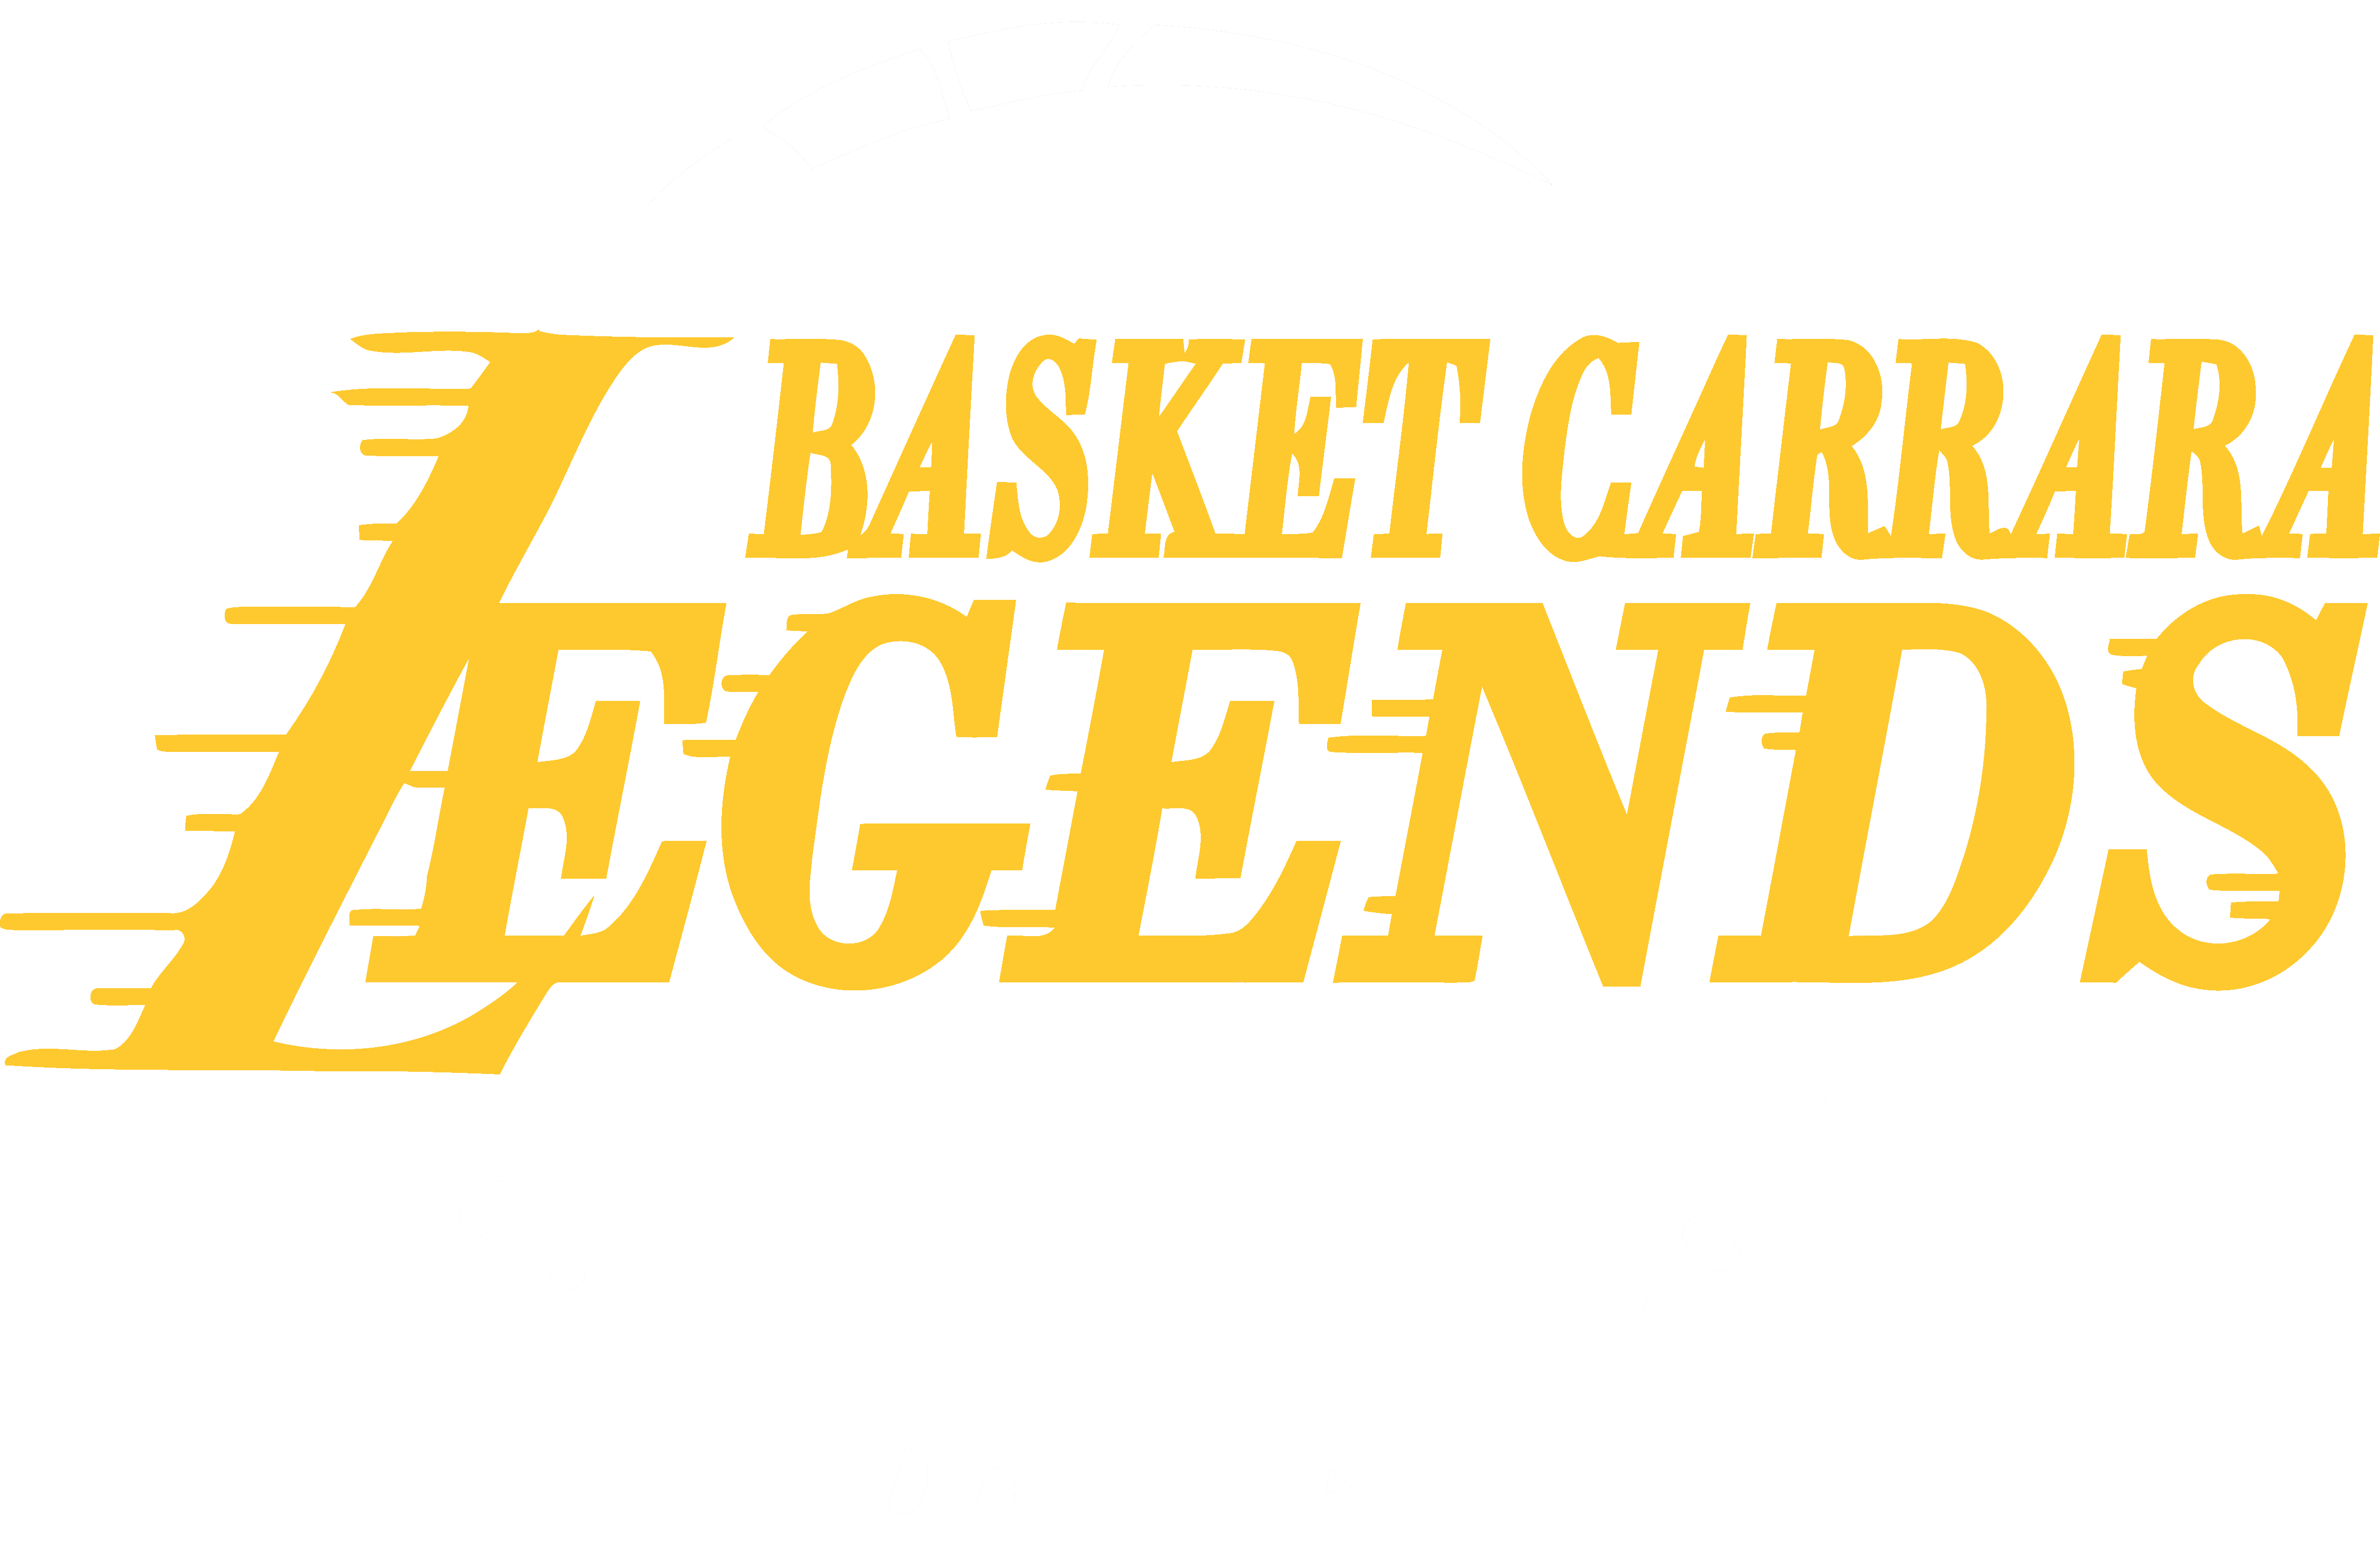 A.S.D. Basket Carrara Legends